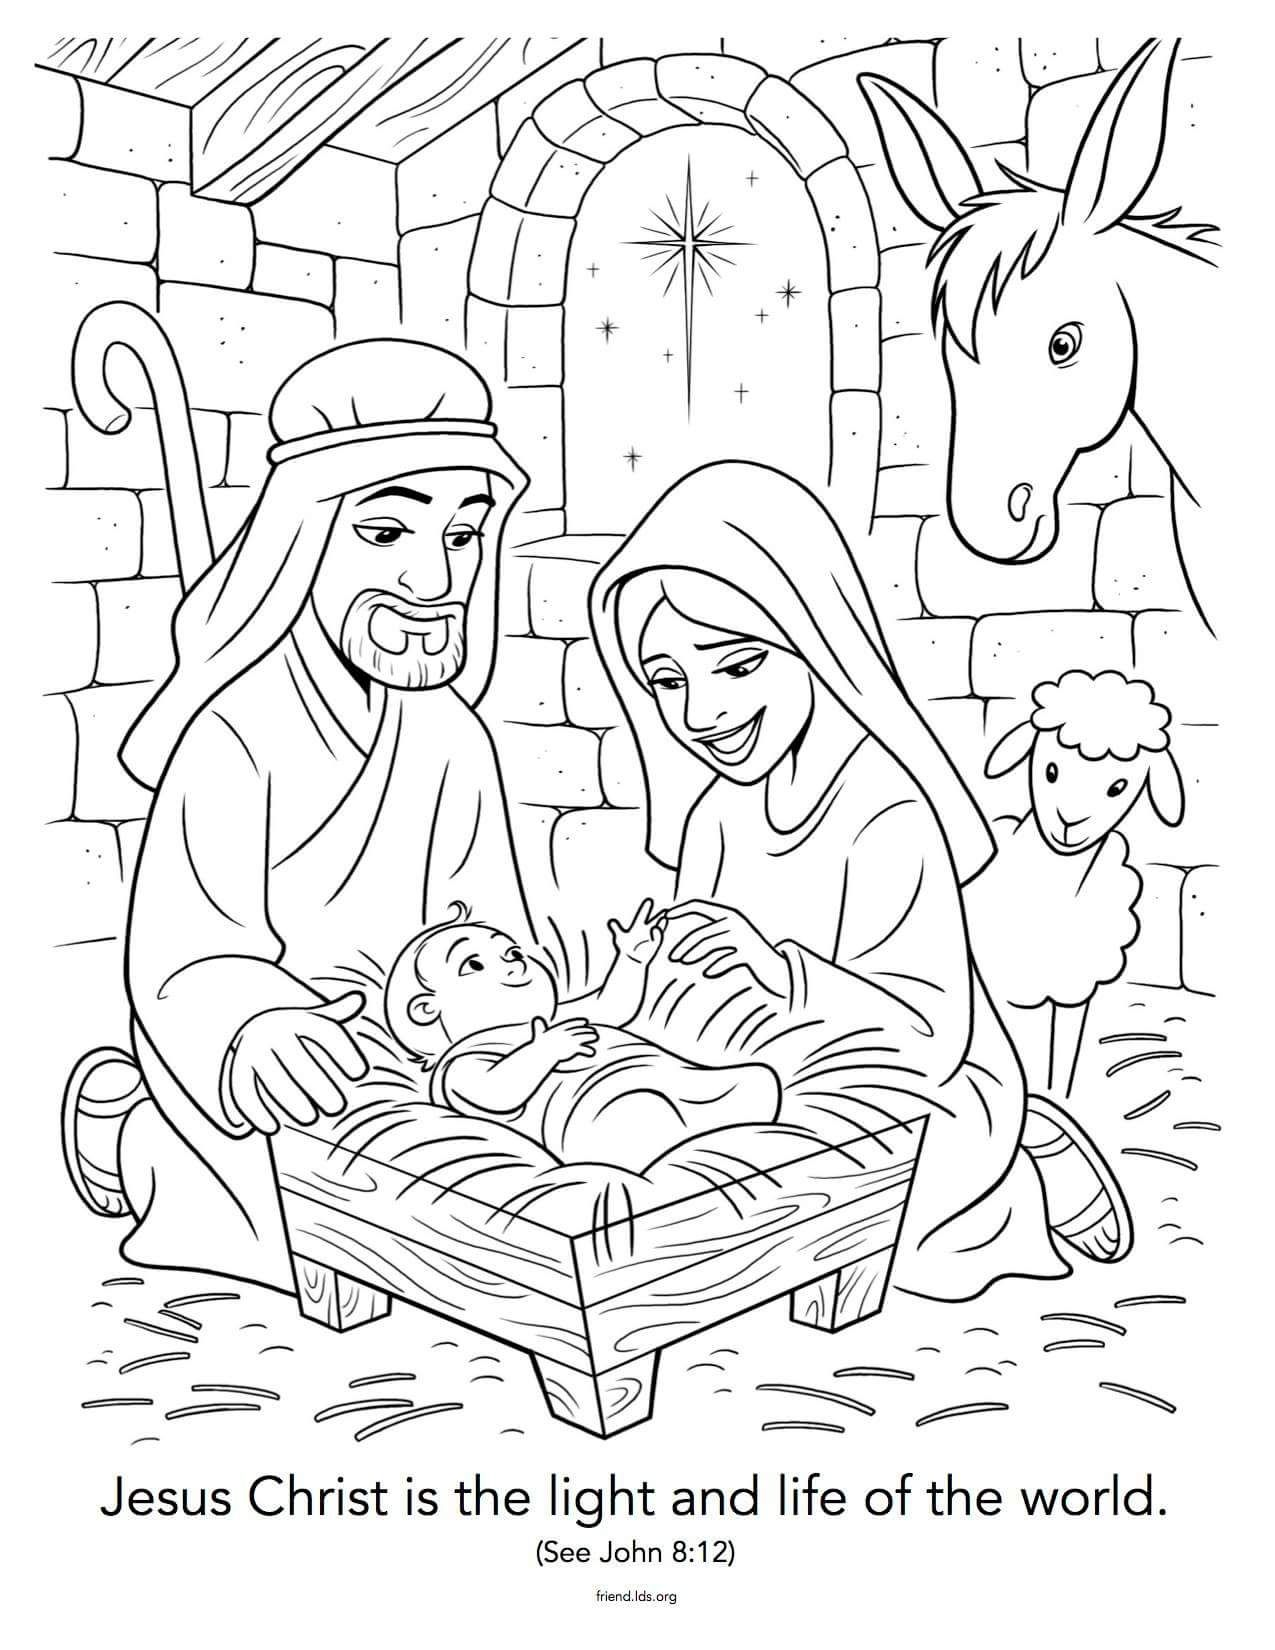 25351935 10154995819181781 3738162634401311698 O Jpg 1 275 1 650 Pixels Jesus Coloring Pages Nativity Coloring Pages Nativity Coloring